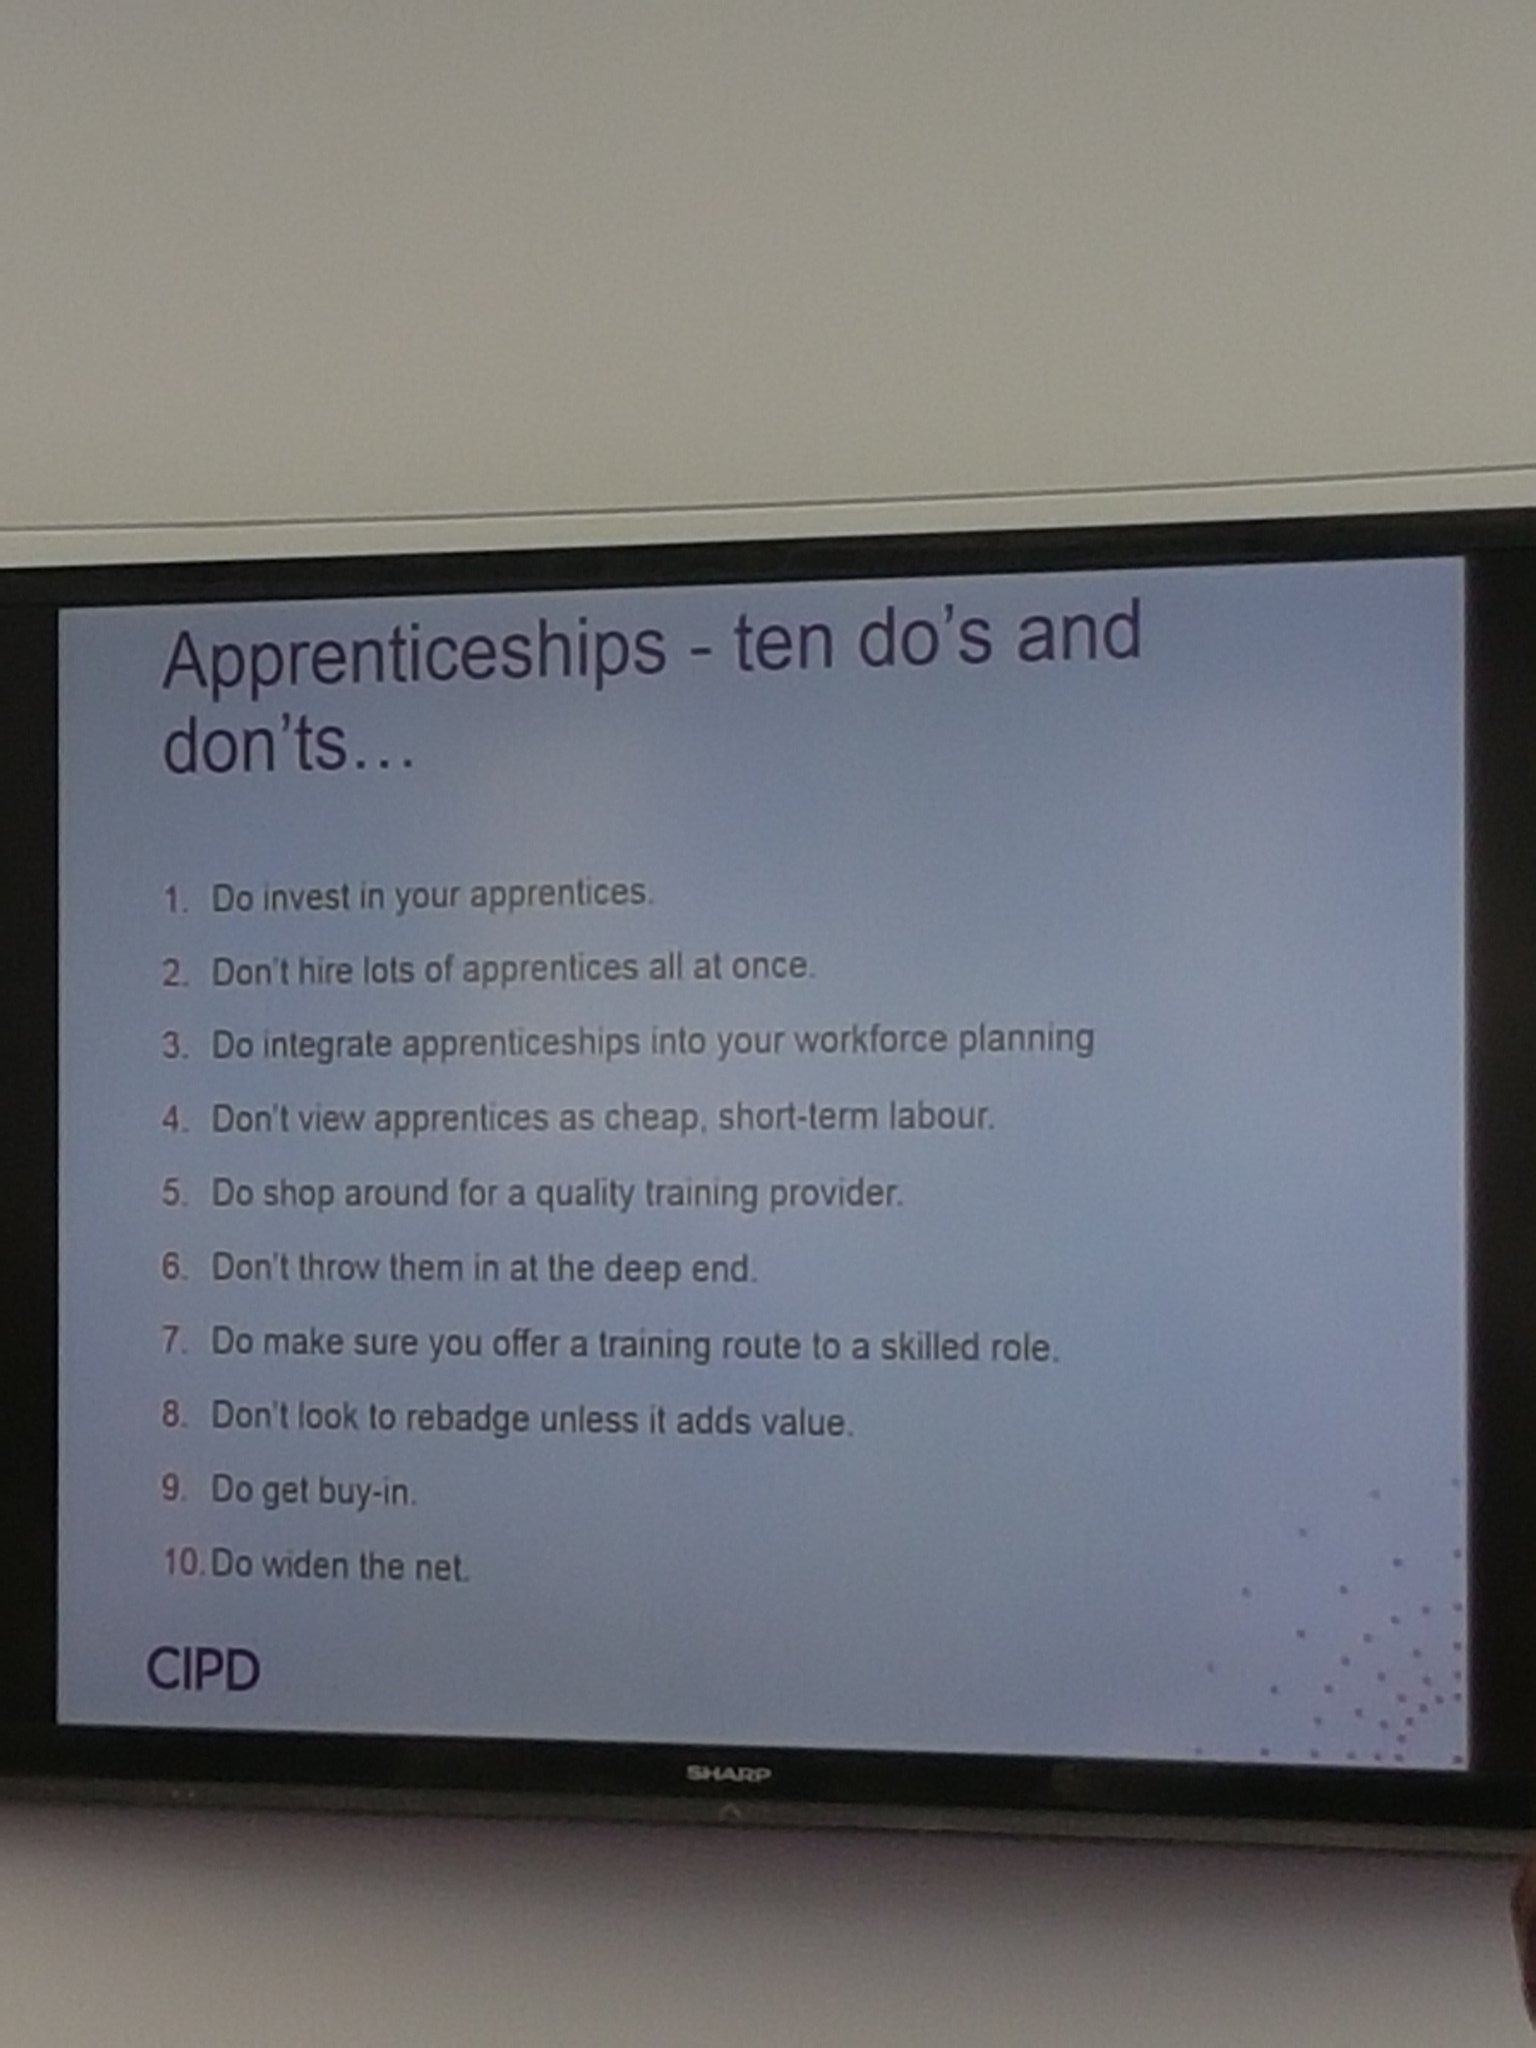 And some useful dos and donts for #Apprenticeship #cipdldshow ....#11 Use a managed learning service provider to manage them for you https://t.co/cnL4o2xqF8